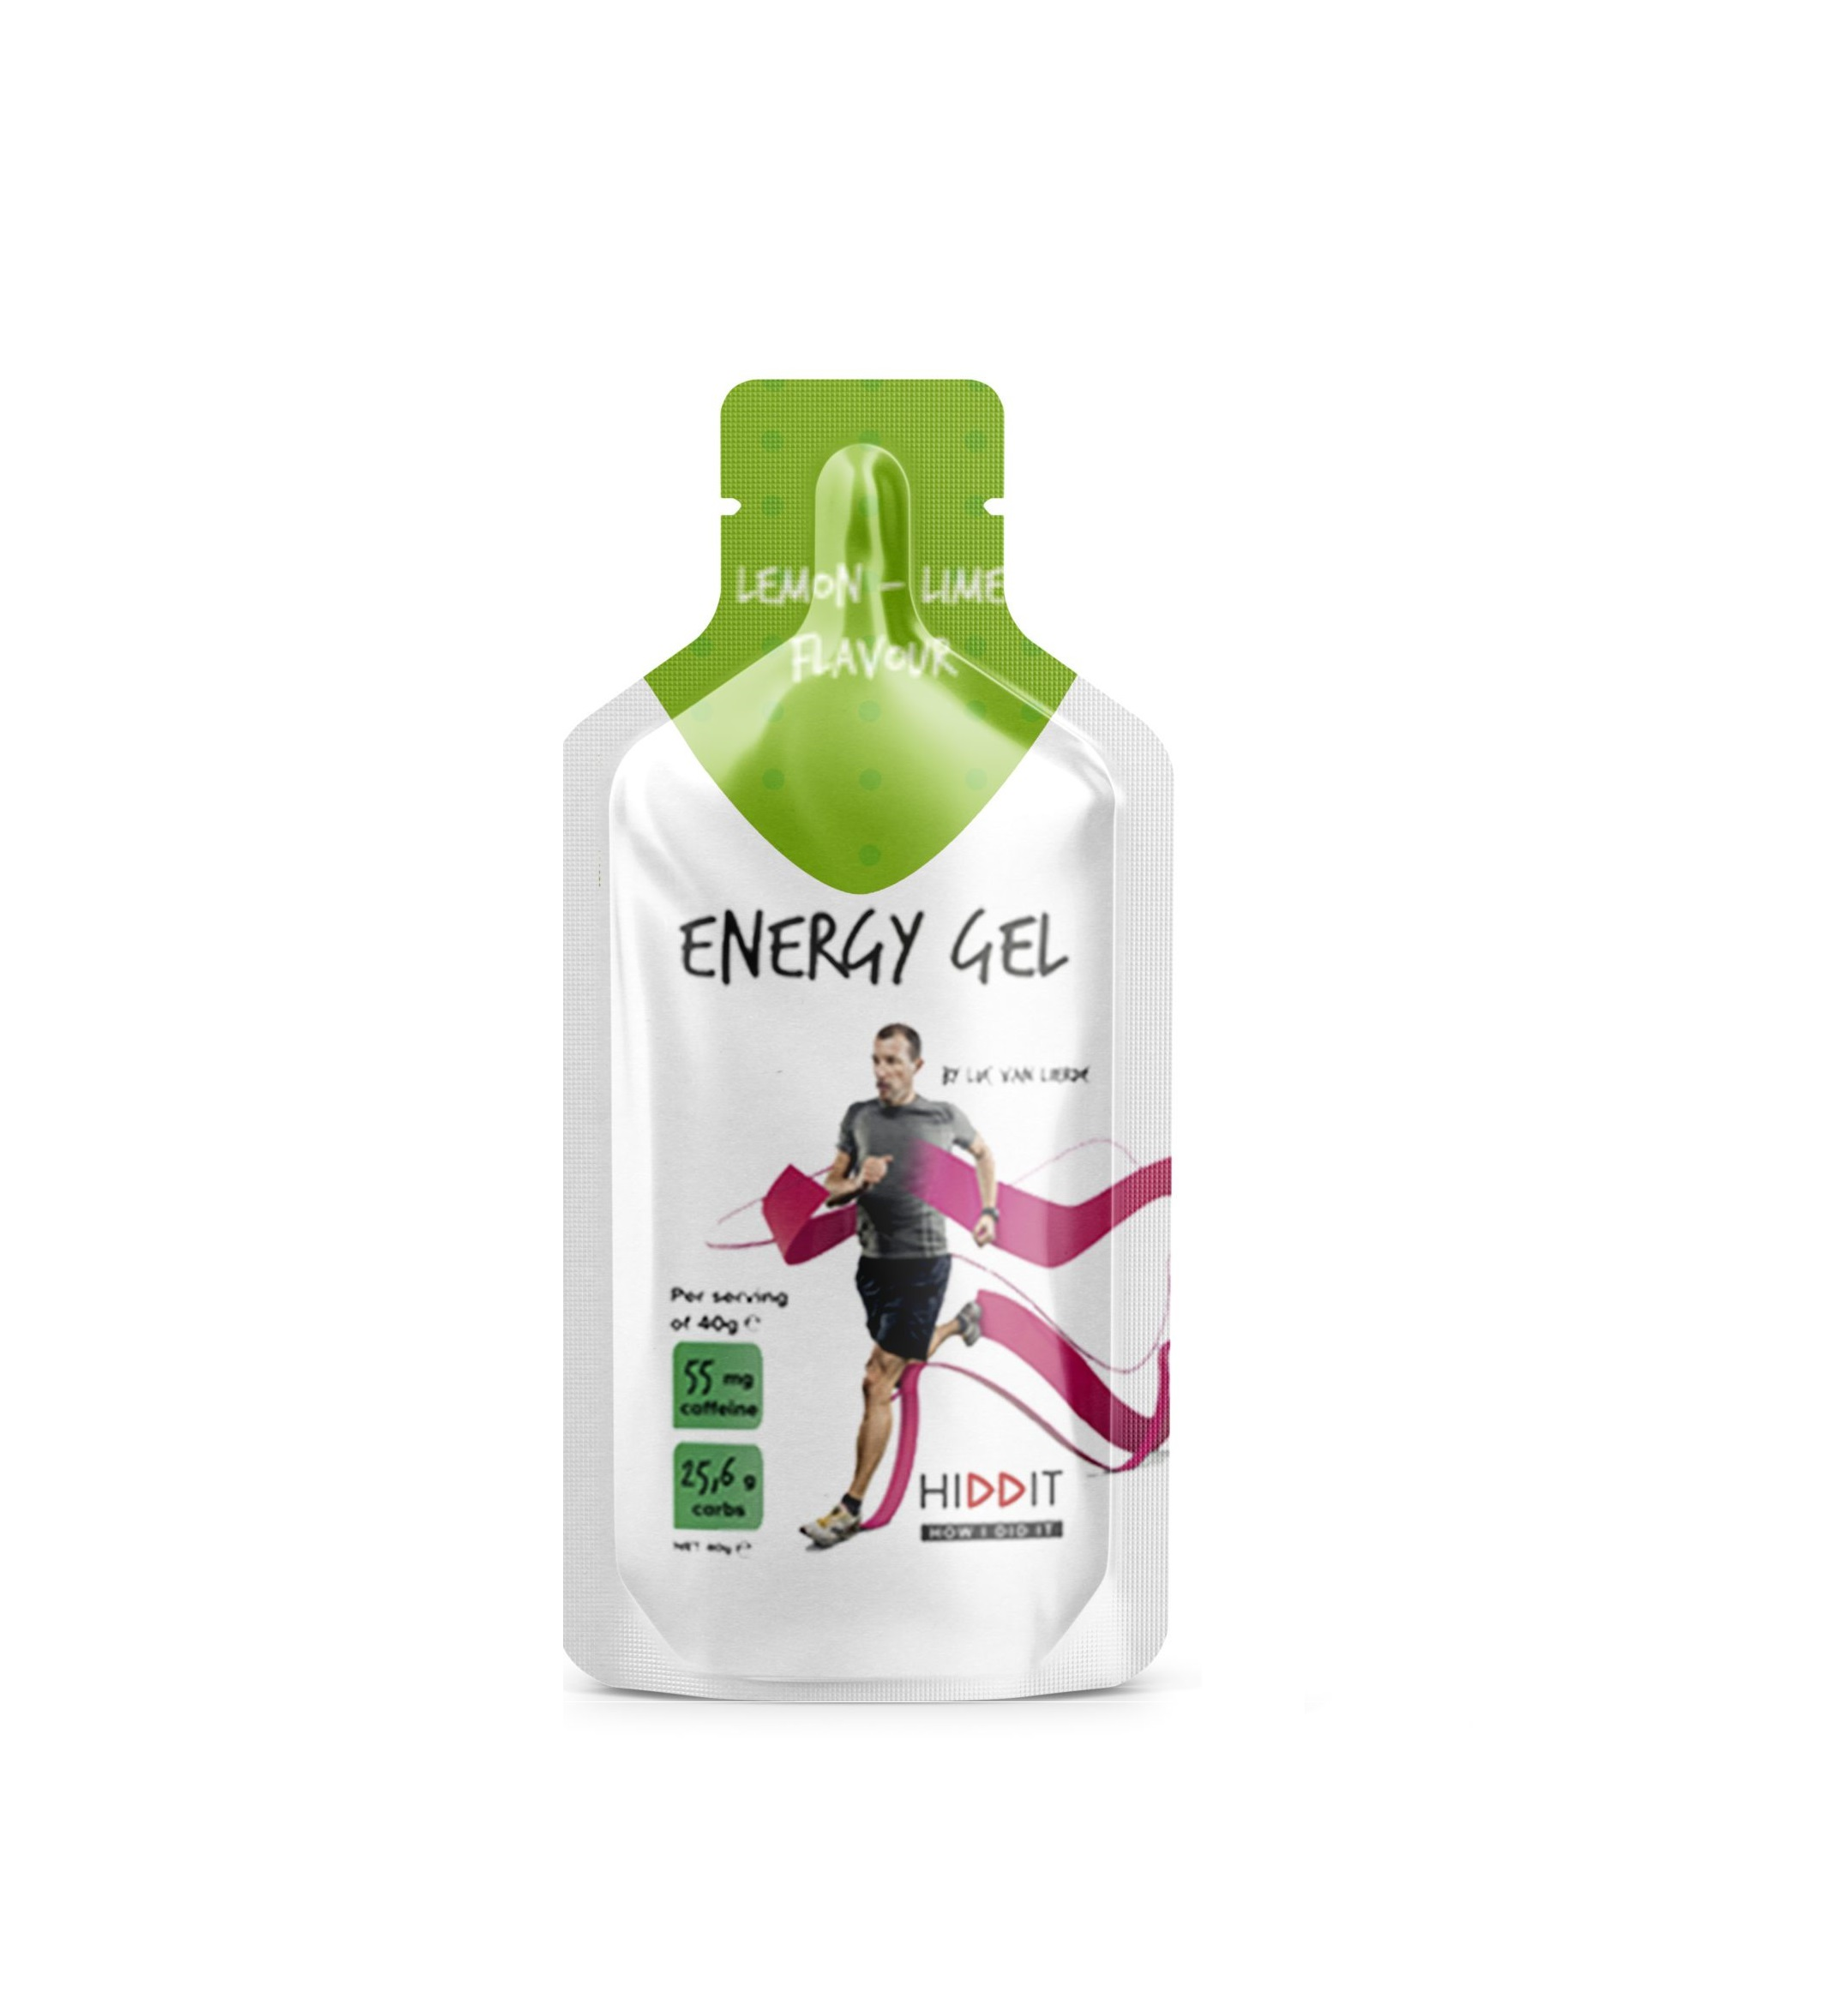 hiddit-energy-gel-lime-jpeg.jpg